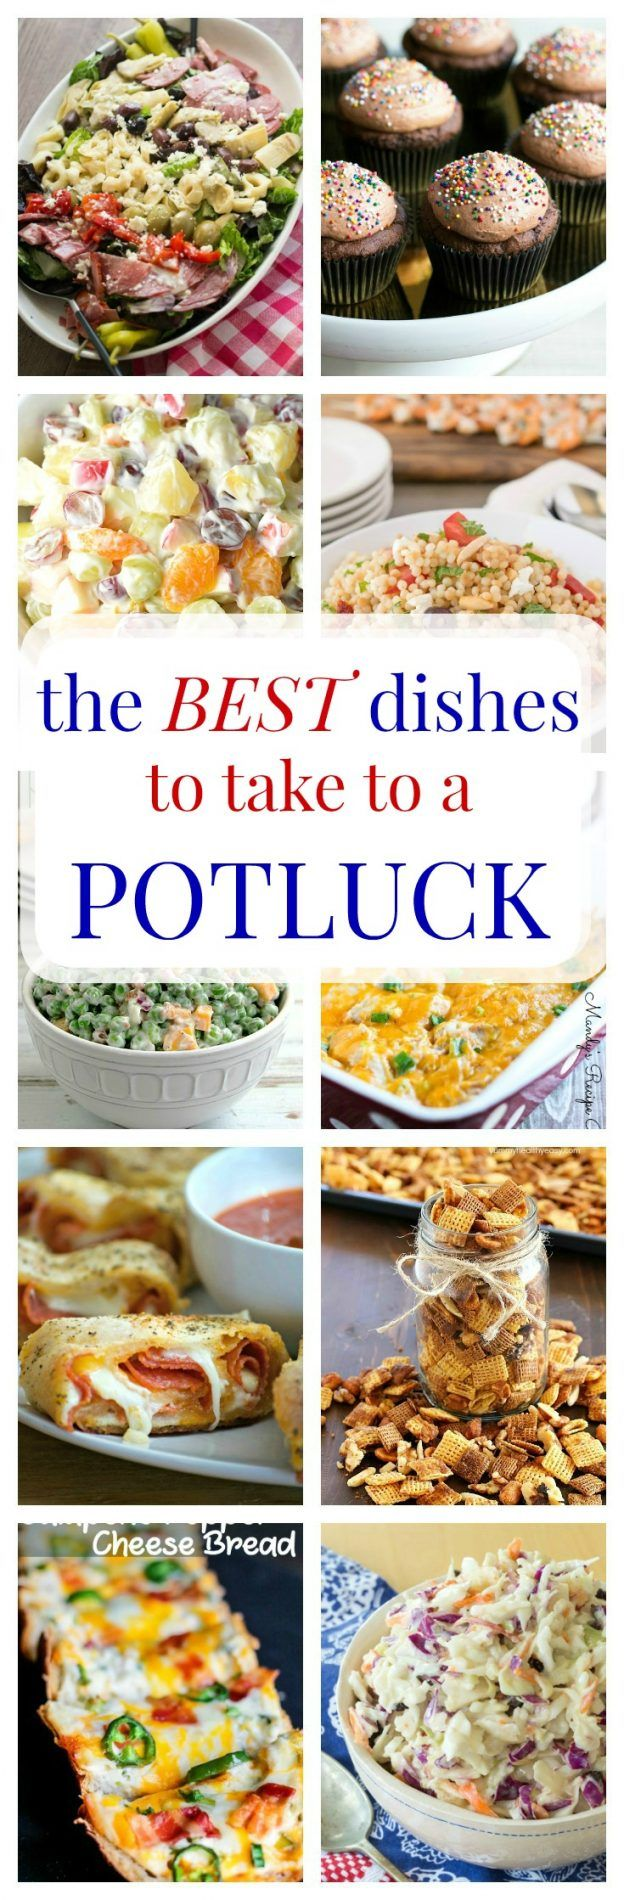 In The Desert clipart summer potluck Recipes Potluck Dishes the on